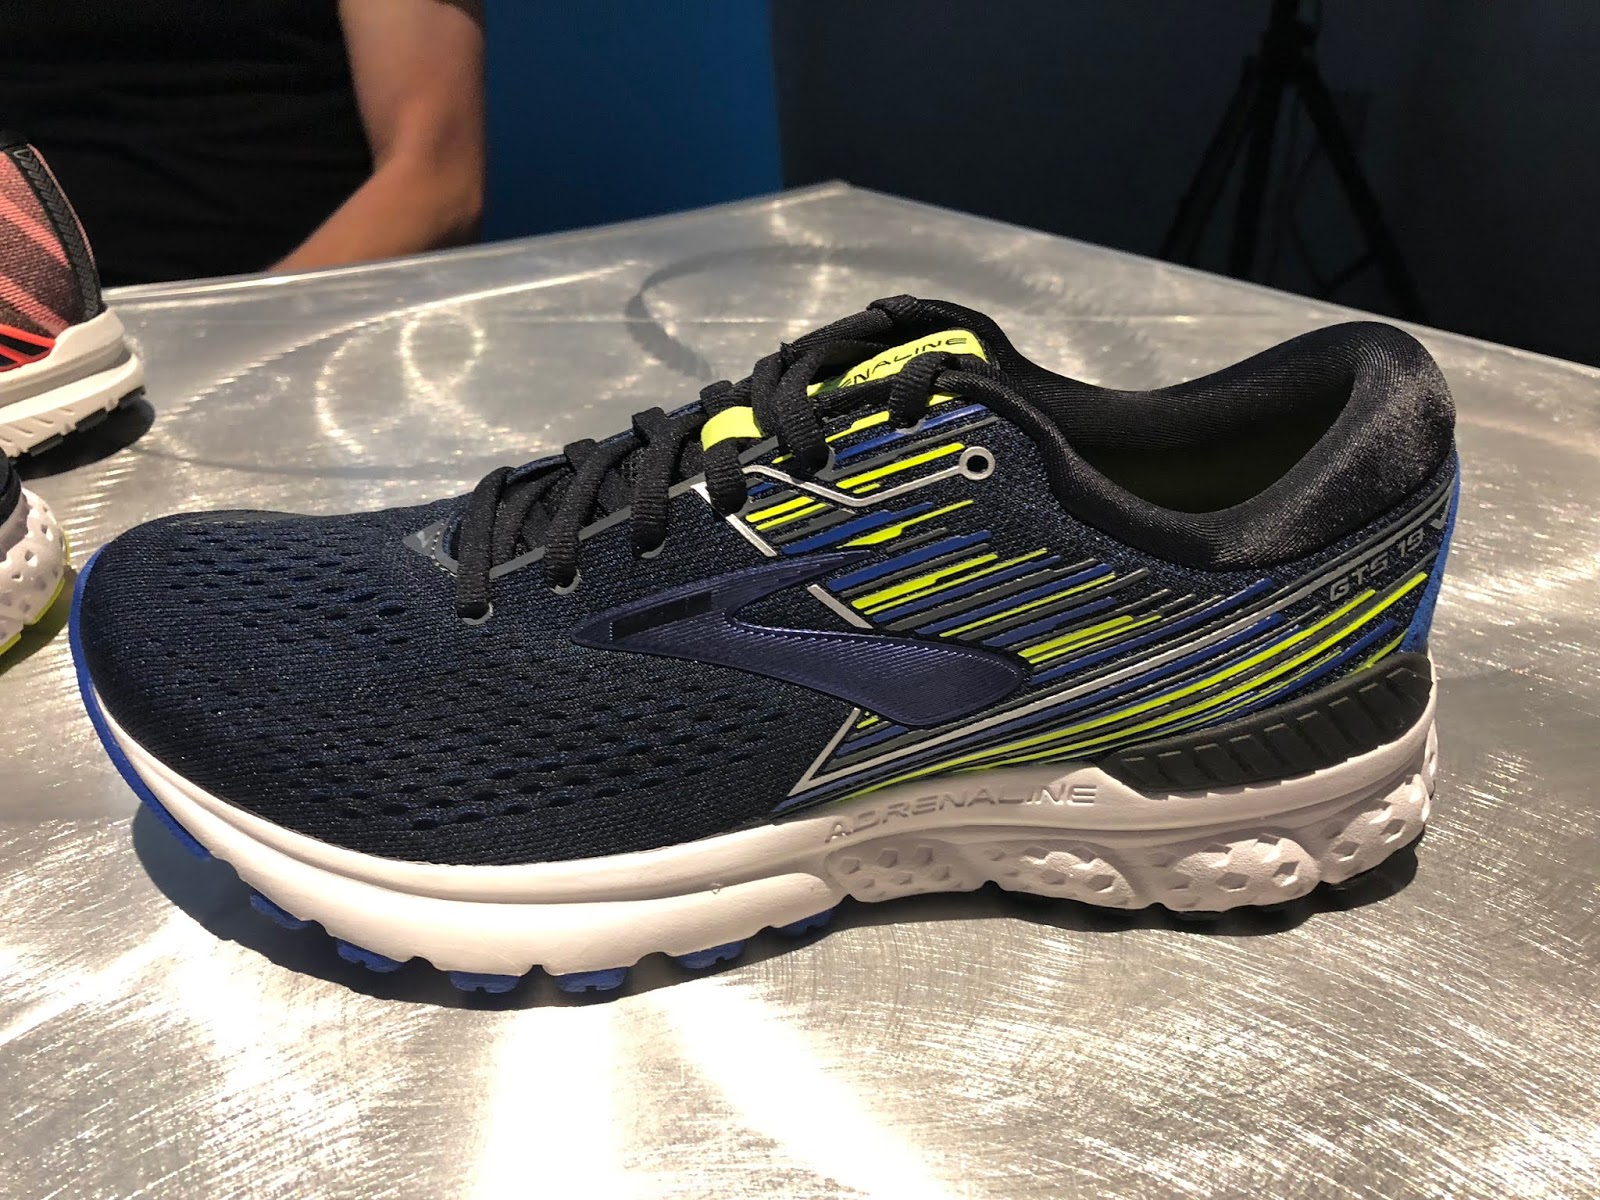 b04b98d23afcf The lateral heel crash pad is Brooks new soft but lively DNA Loft which we  liked so much in the Ghost 11 (RTR review) and as the entire midsole of the  ...